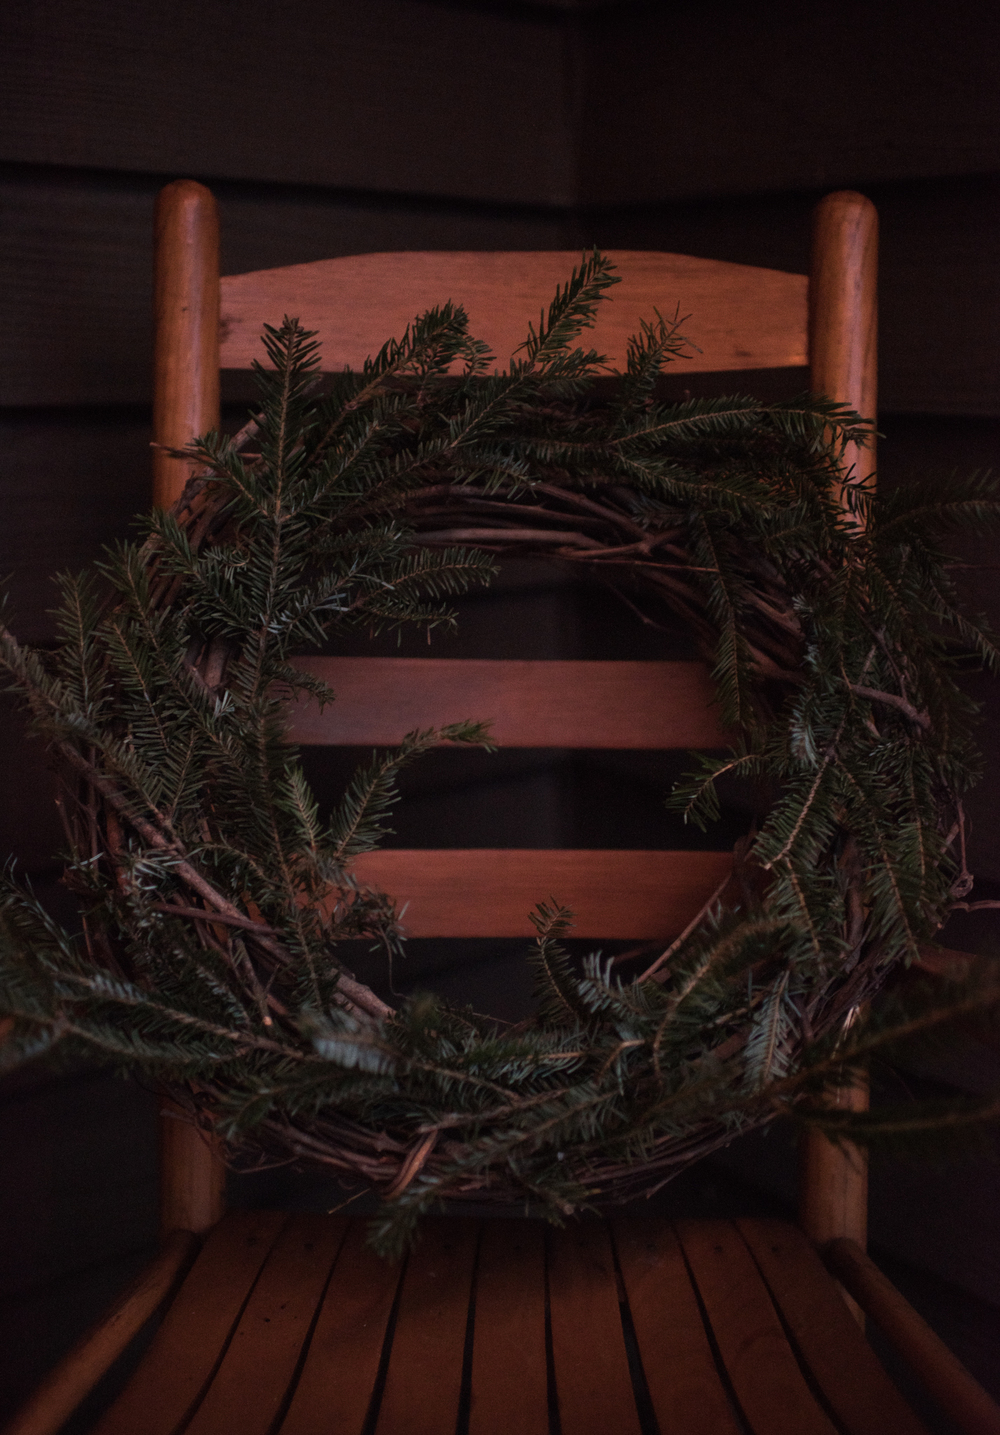 Asheville Folk: A Thrifty Christmas by Chelsea Lane: Gather scraps from the tree lot (my favorite freebie) to create a swag or wreath. Find yourself a grapevine wreath form to make it easier!